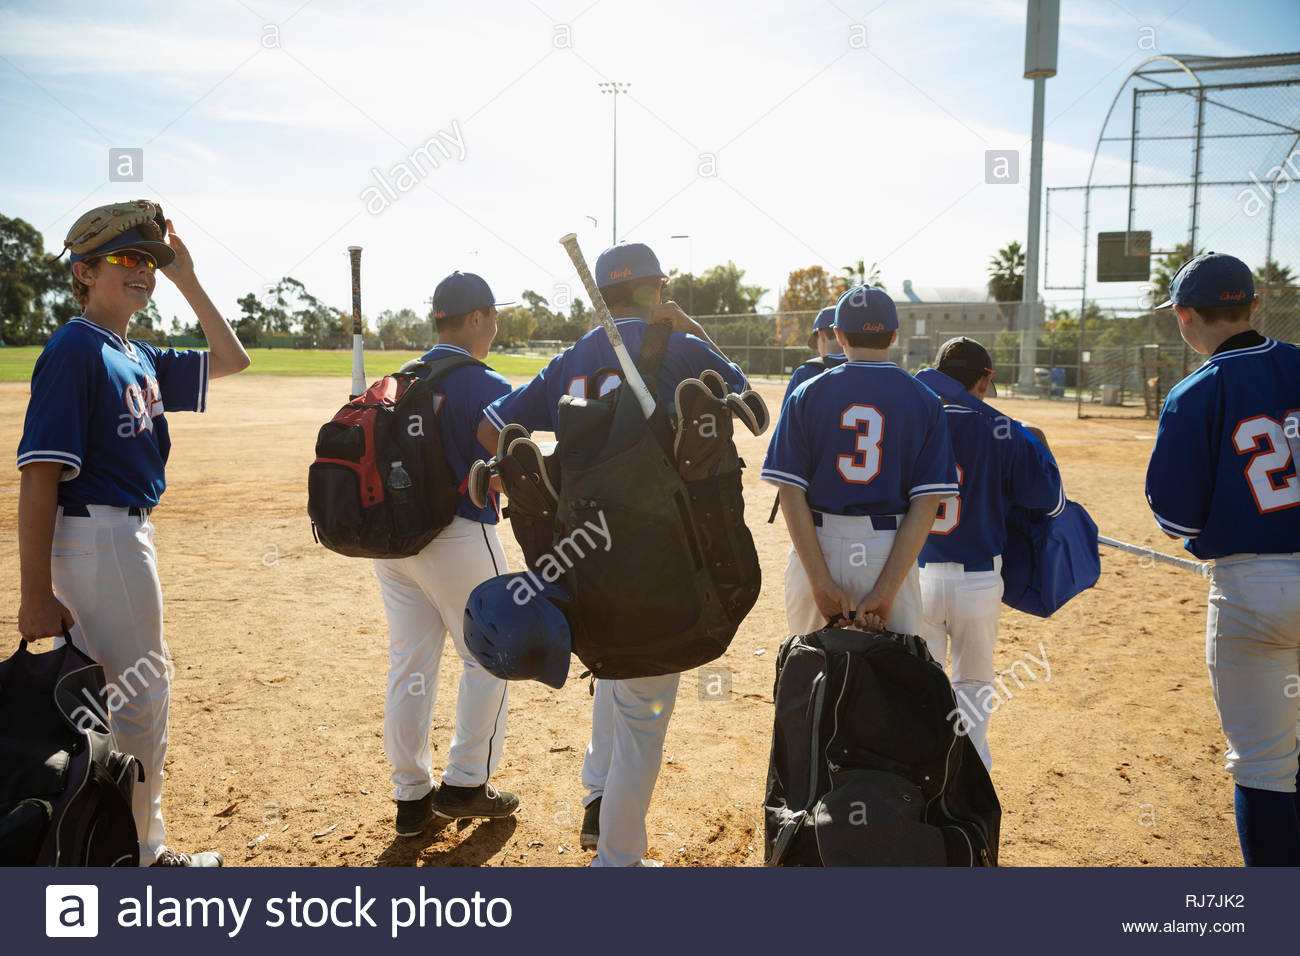 Baseball players carrying equipment on sunny field - Stock Image